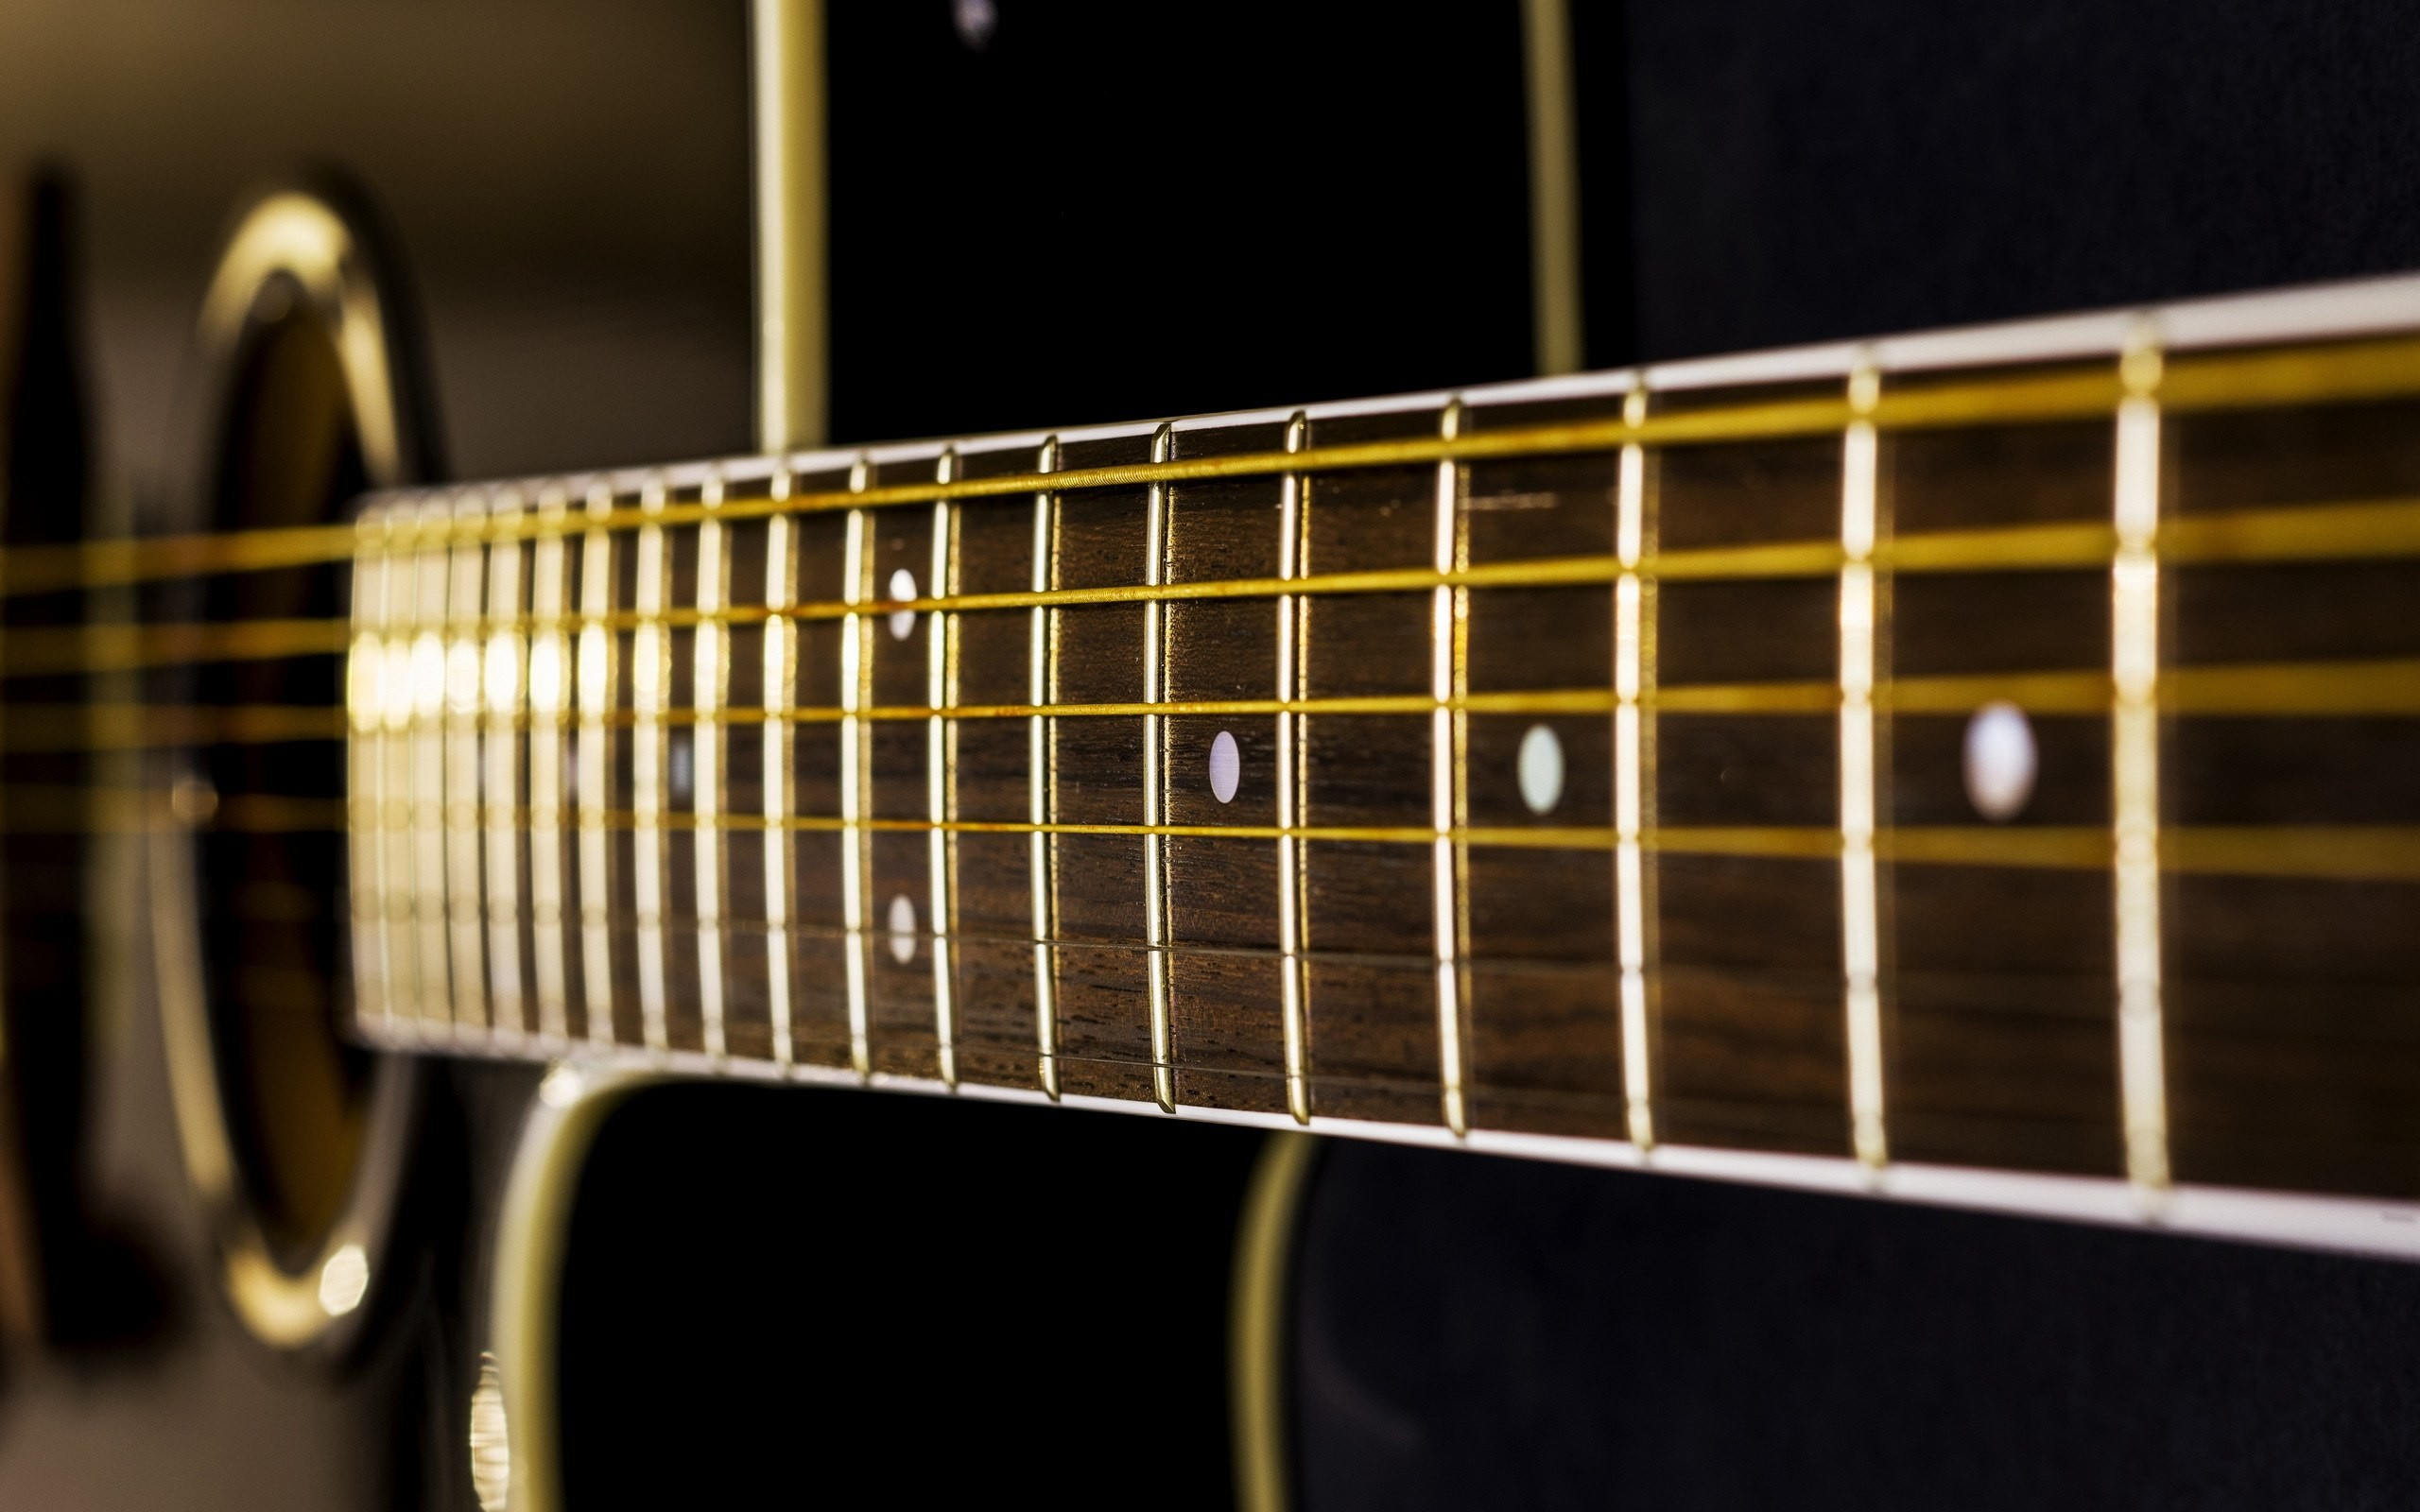 1123593-electric-guitar-wallpaper-2560x1600-for-lockscreen.jpg